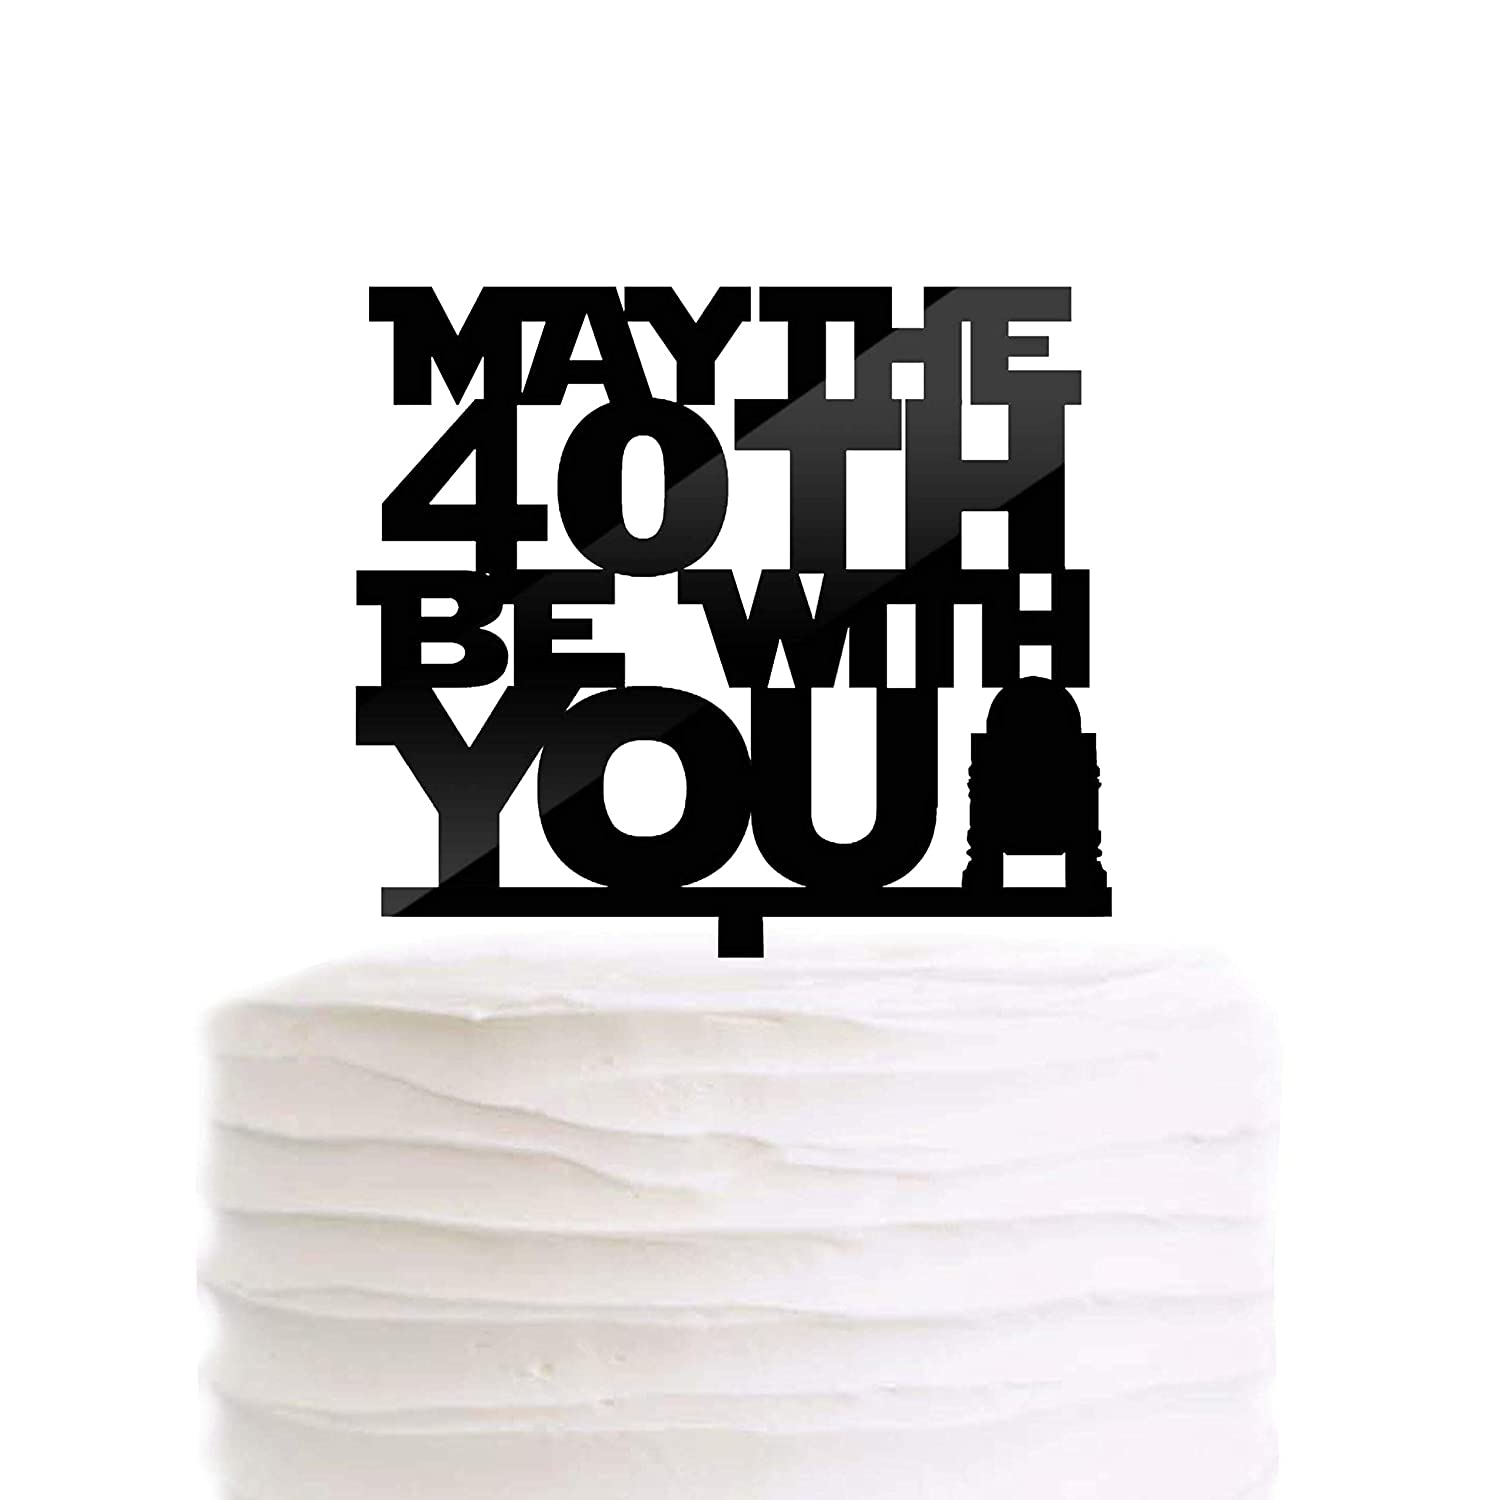 May The 40th Be with You 40 Year Old Birthday Cake Topper Black Acrylic Funny Theme Birthday